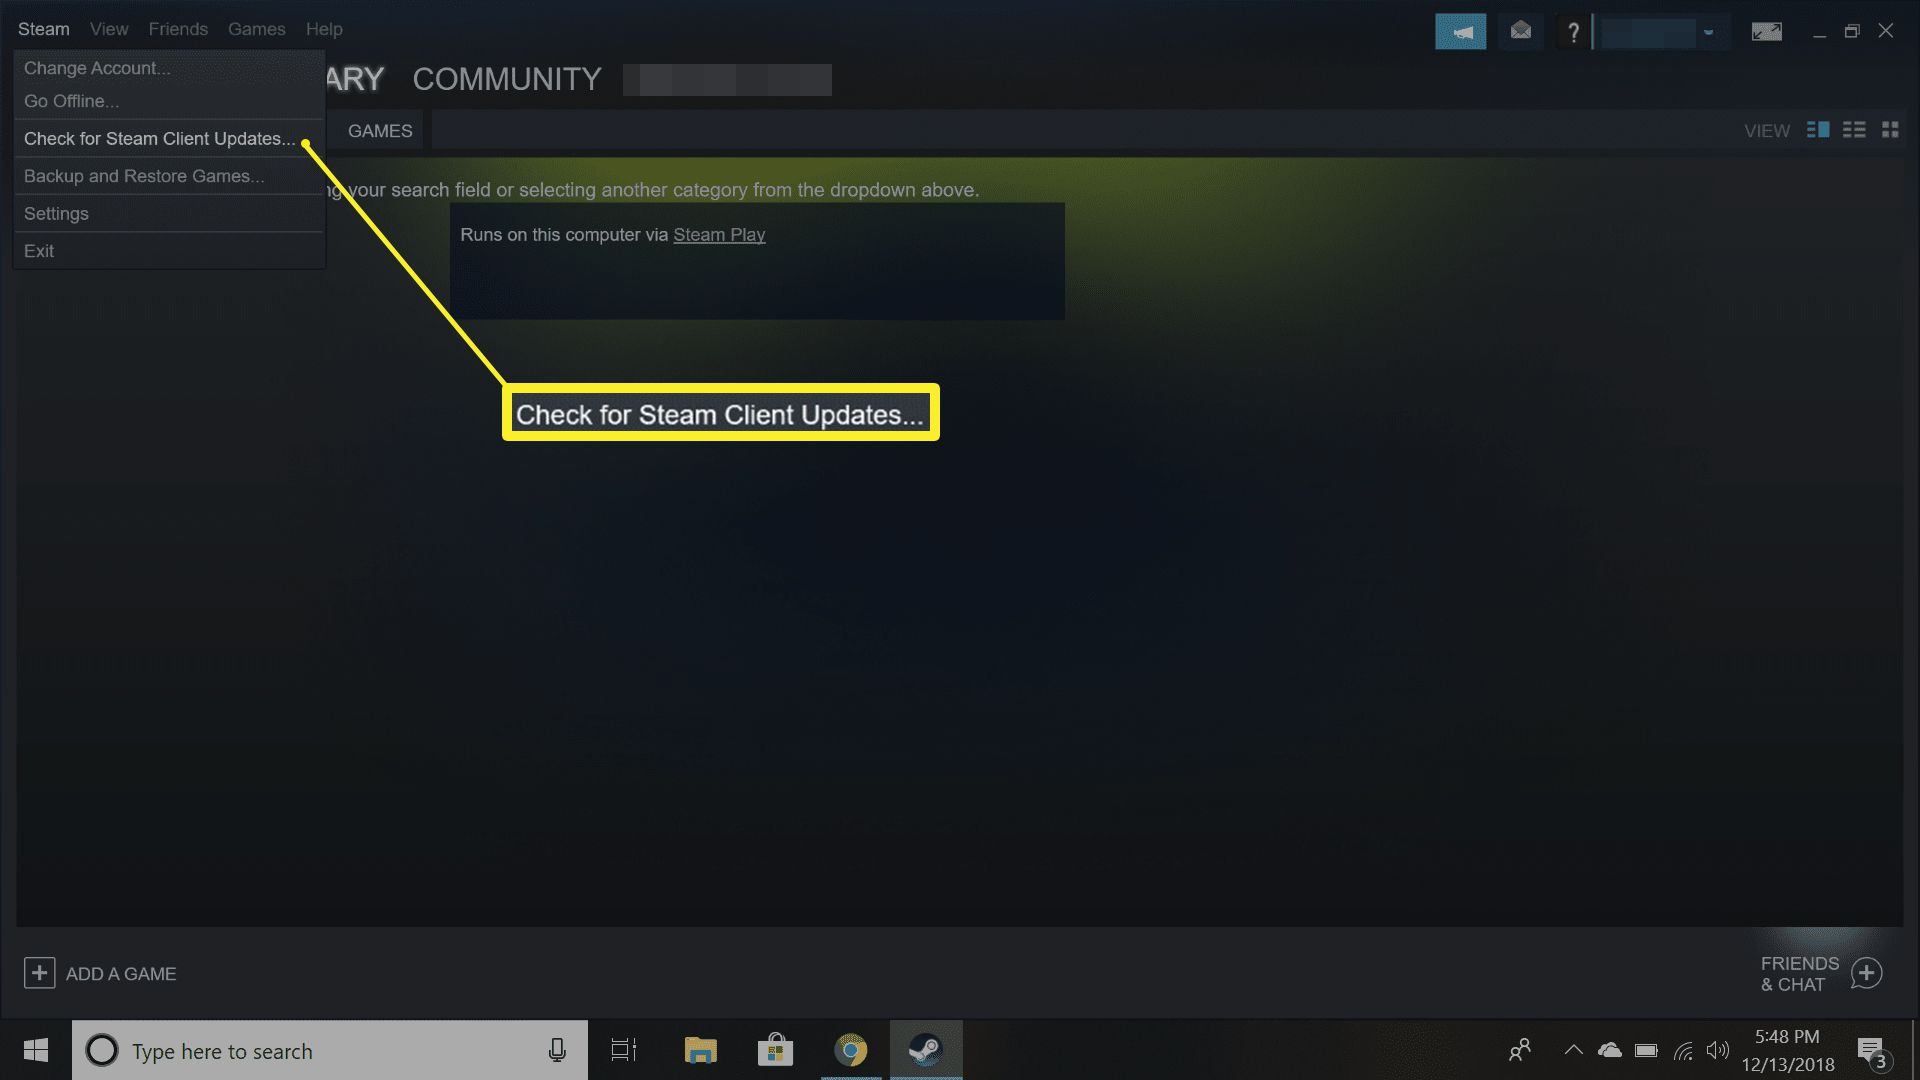 Check for Steam updates